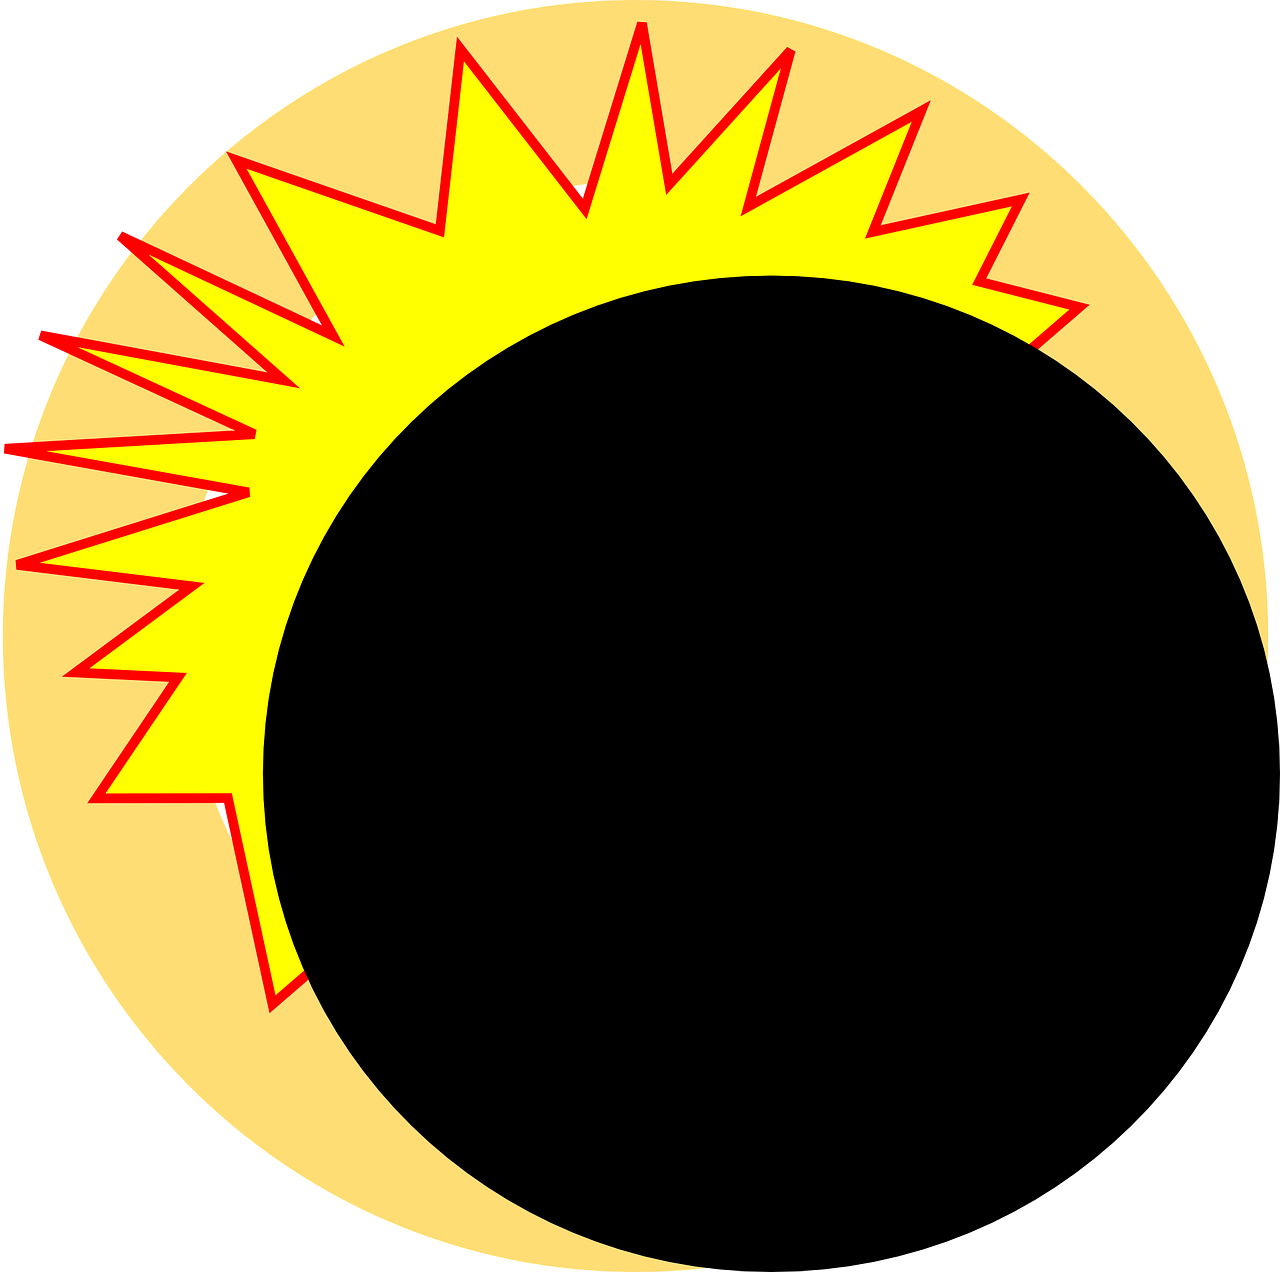 Sun with eclipse glasses clipart png black and white library Clip Art Eclipse Solar - Alternative Clipart Design • png black and white library